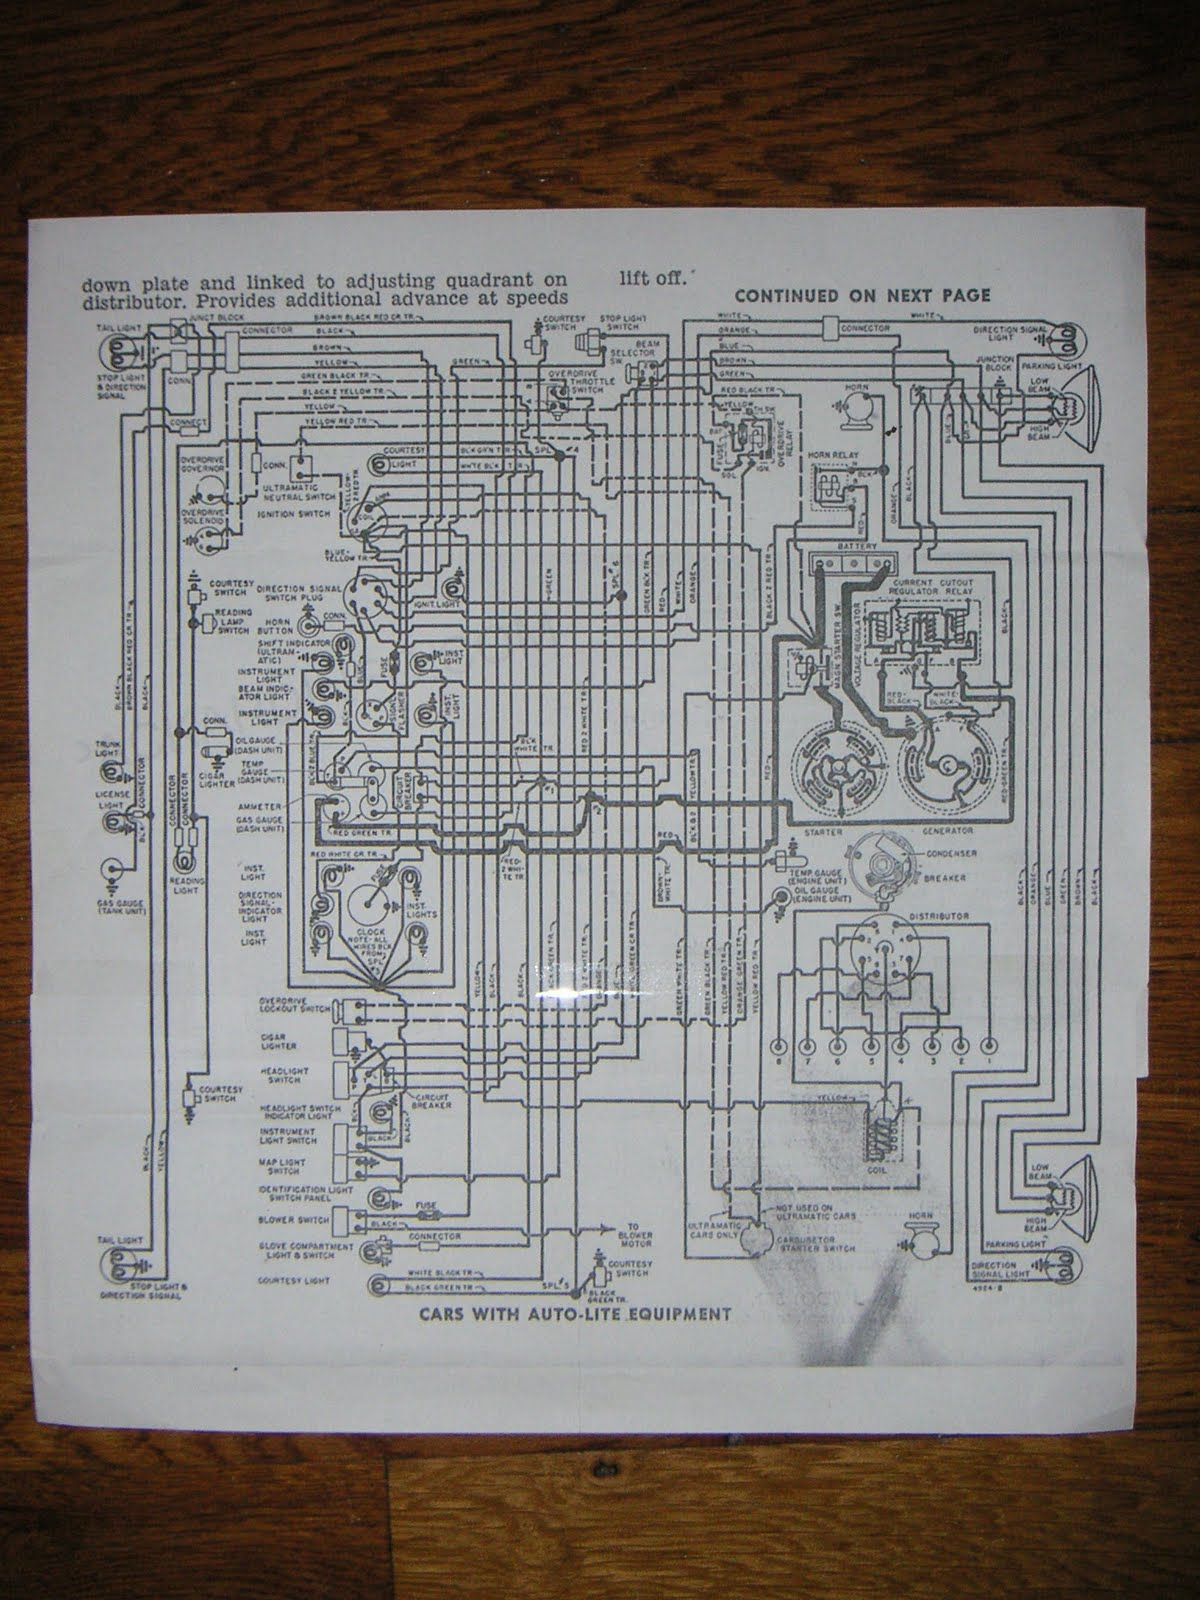 1951 Olds Wiring Diagram Will Be A Thing 1942 Farmall M Electrical Schematic Oldsmobile 1956 Desoto Automotive Diagrams Basic